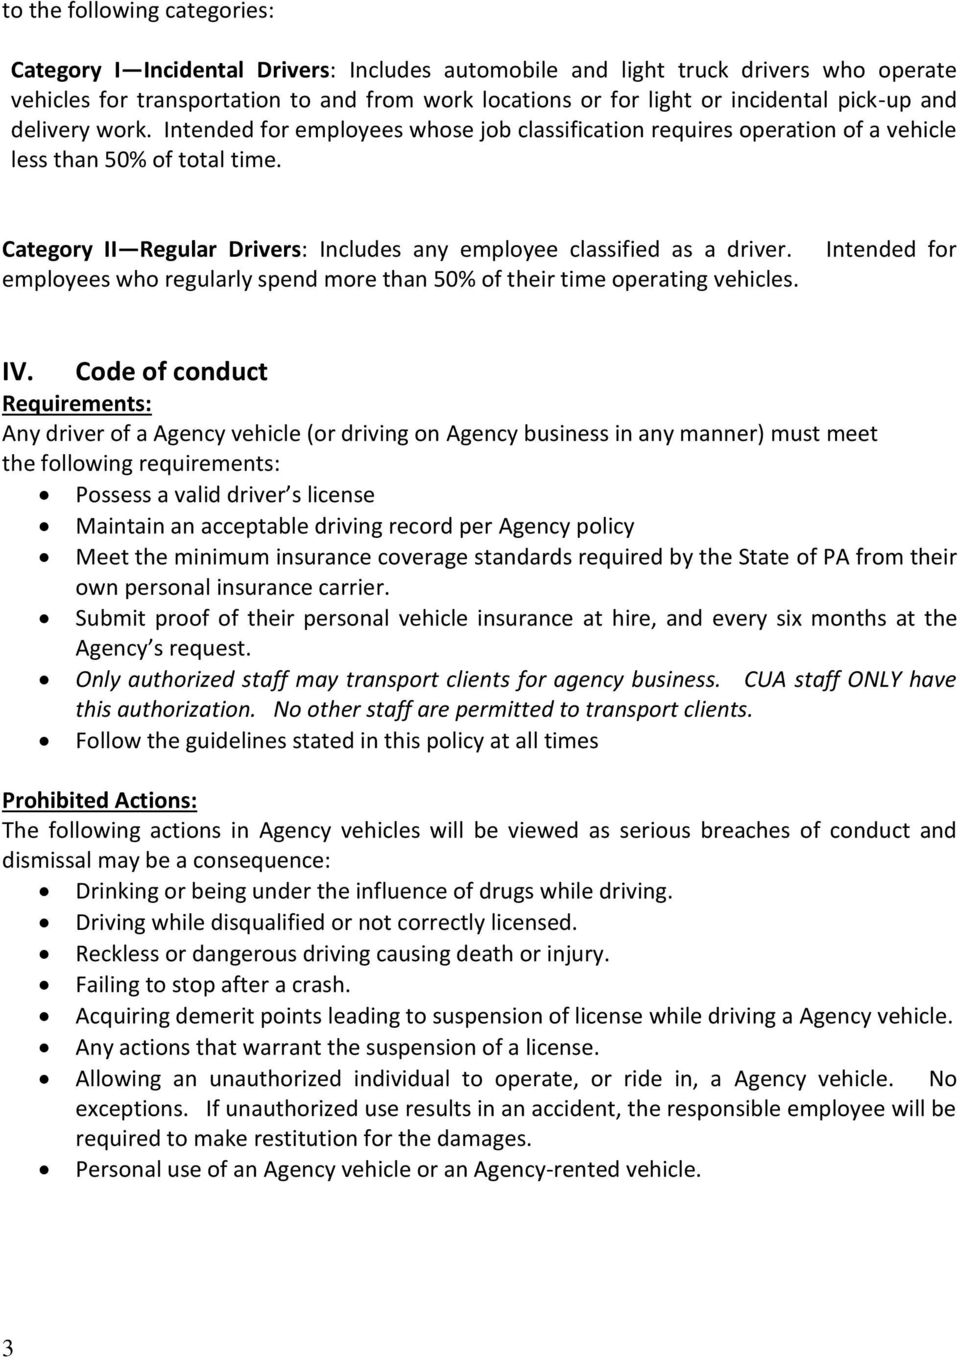 Category II Regular Drivers: Includes any employee classified as a driver. employees who regularly spend more than 50% of their time operating vehicles. Intended for IV.